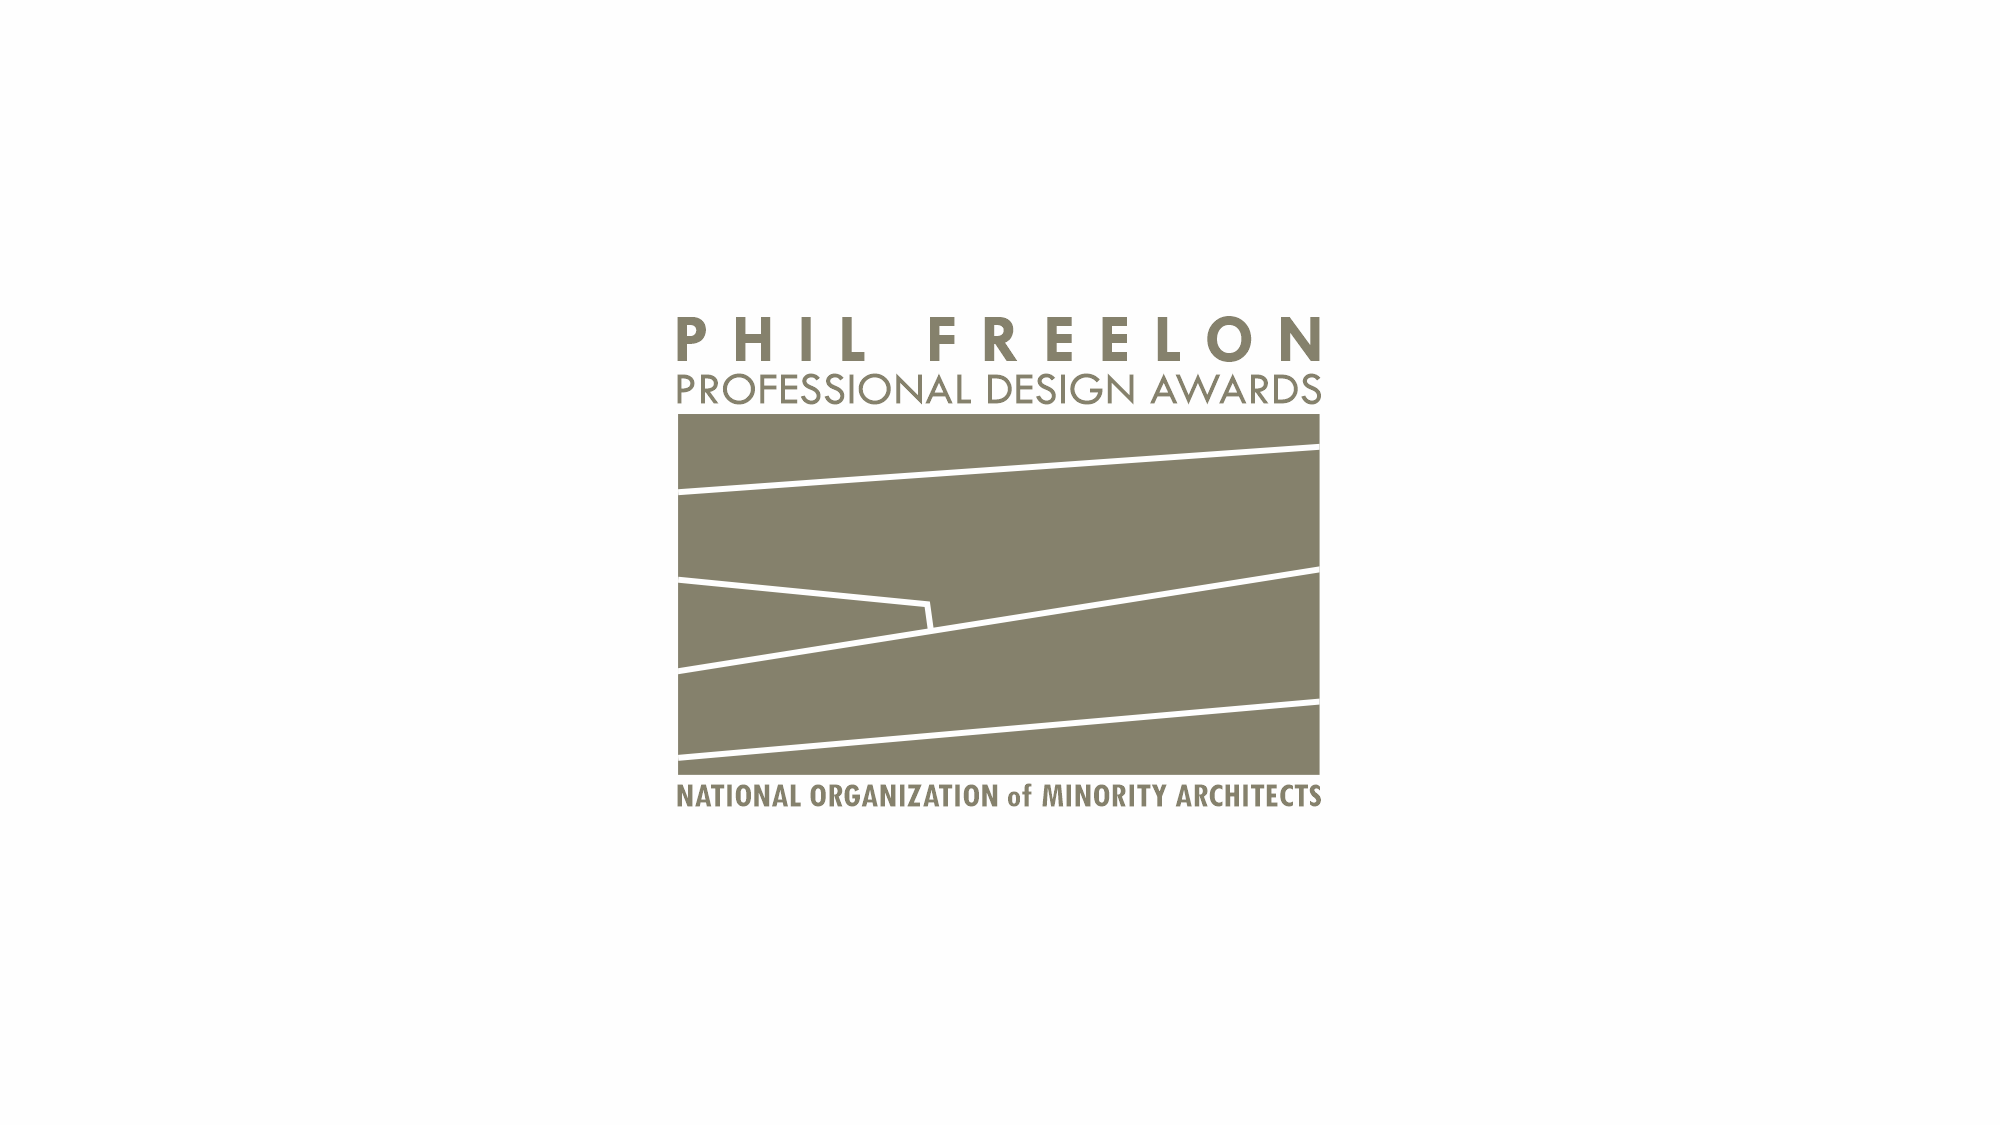 Phil Freelon Professional Design Awards logo - an abstraction of facade elements, five simple lines cutting across a deep beige field